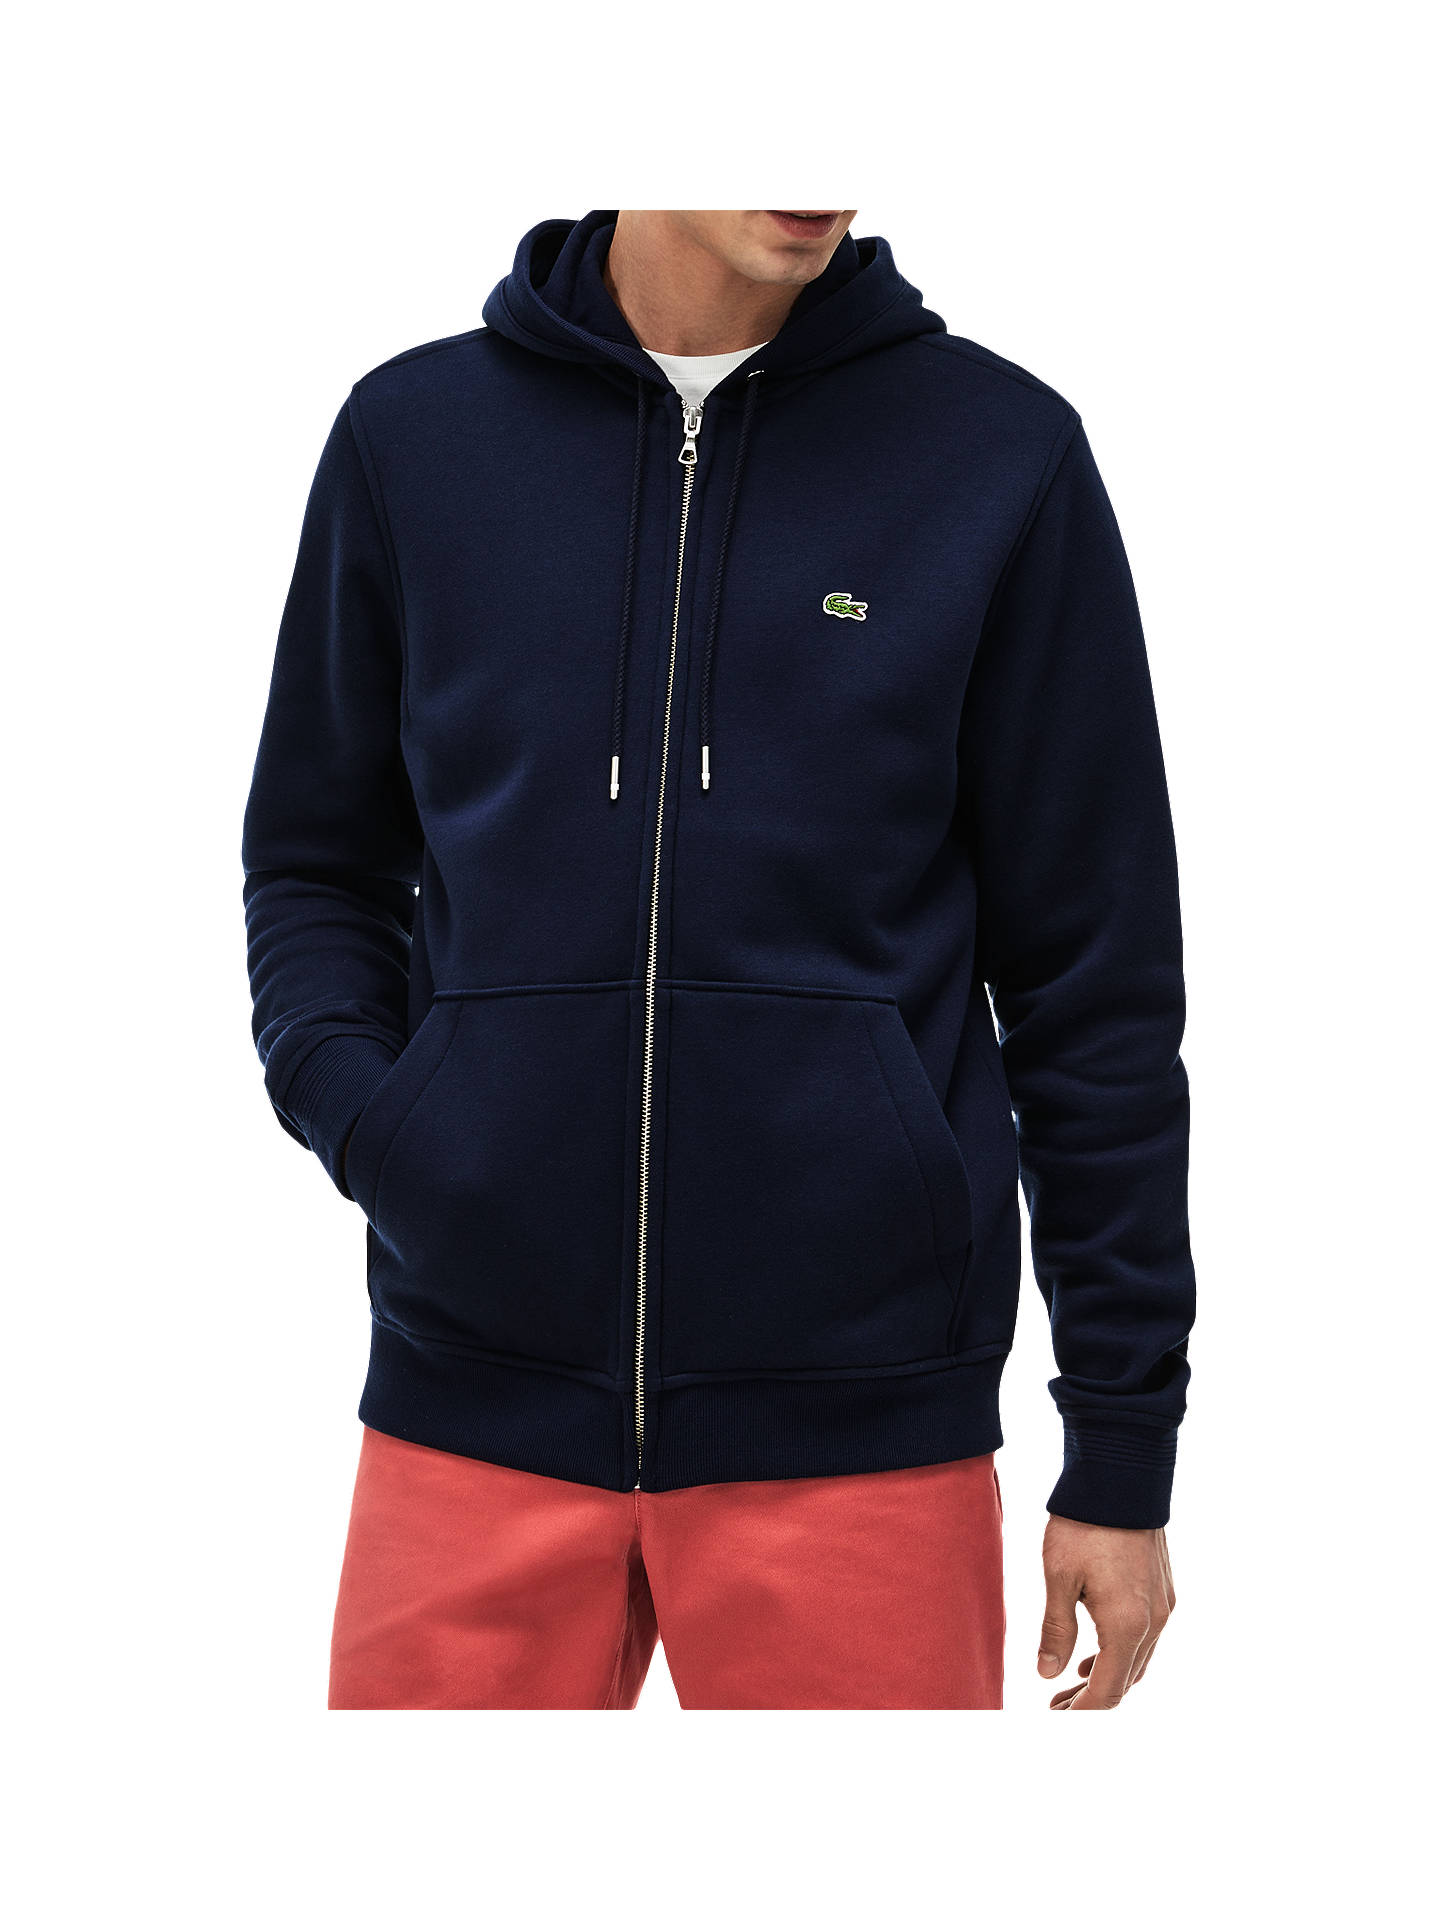 dab5e926fd29f6 Lacoste Classic Zip Through Hoodie at John Lewis   Partners